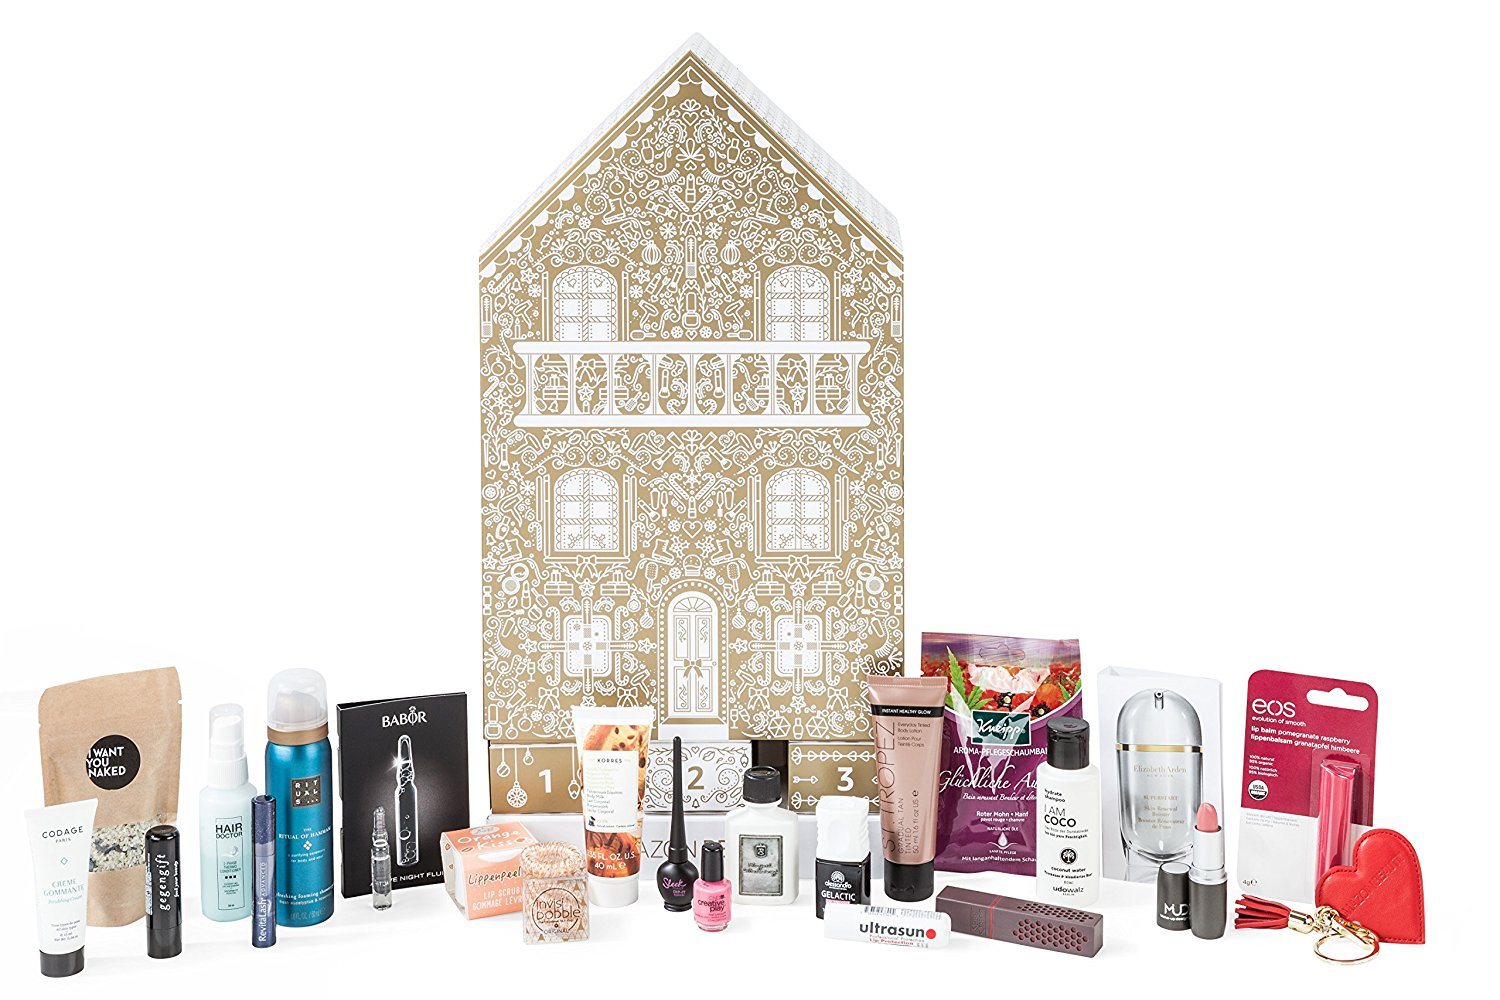 Amazon Beauty Adventskalender 2017